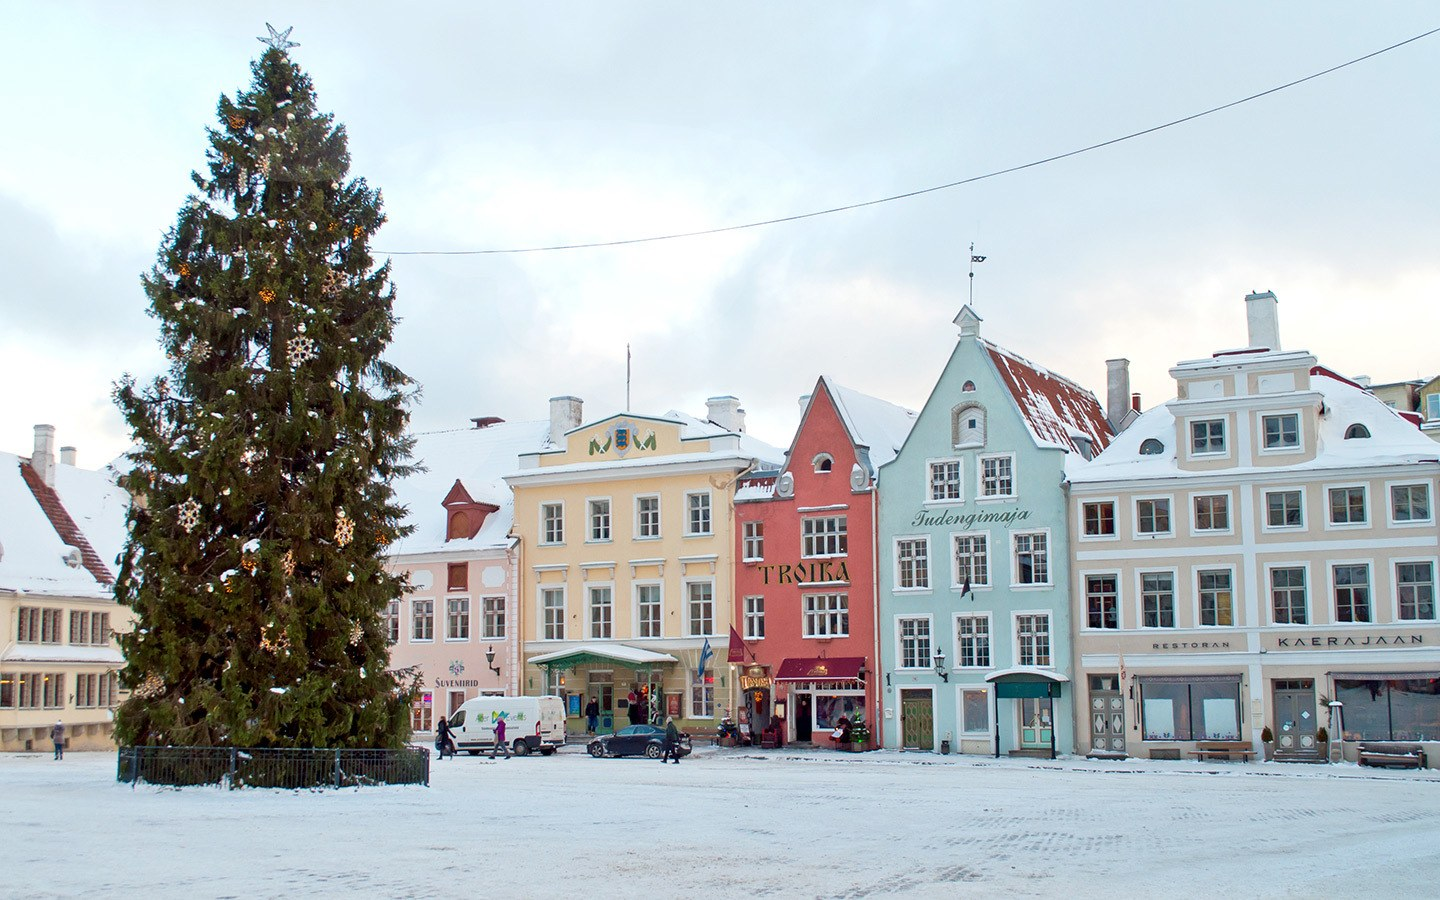 The snowy old town square in Tallinn, Estonia